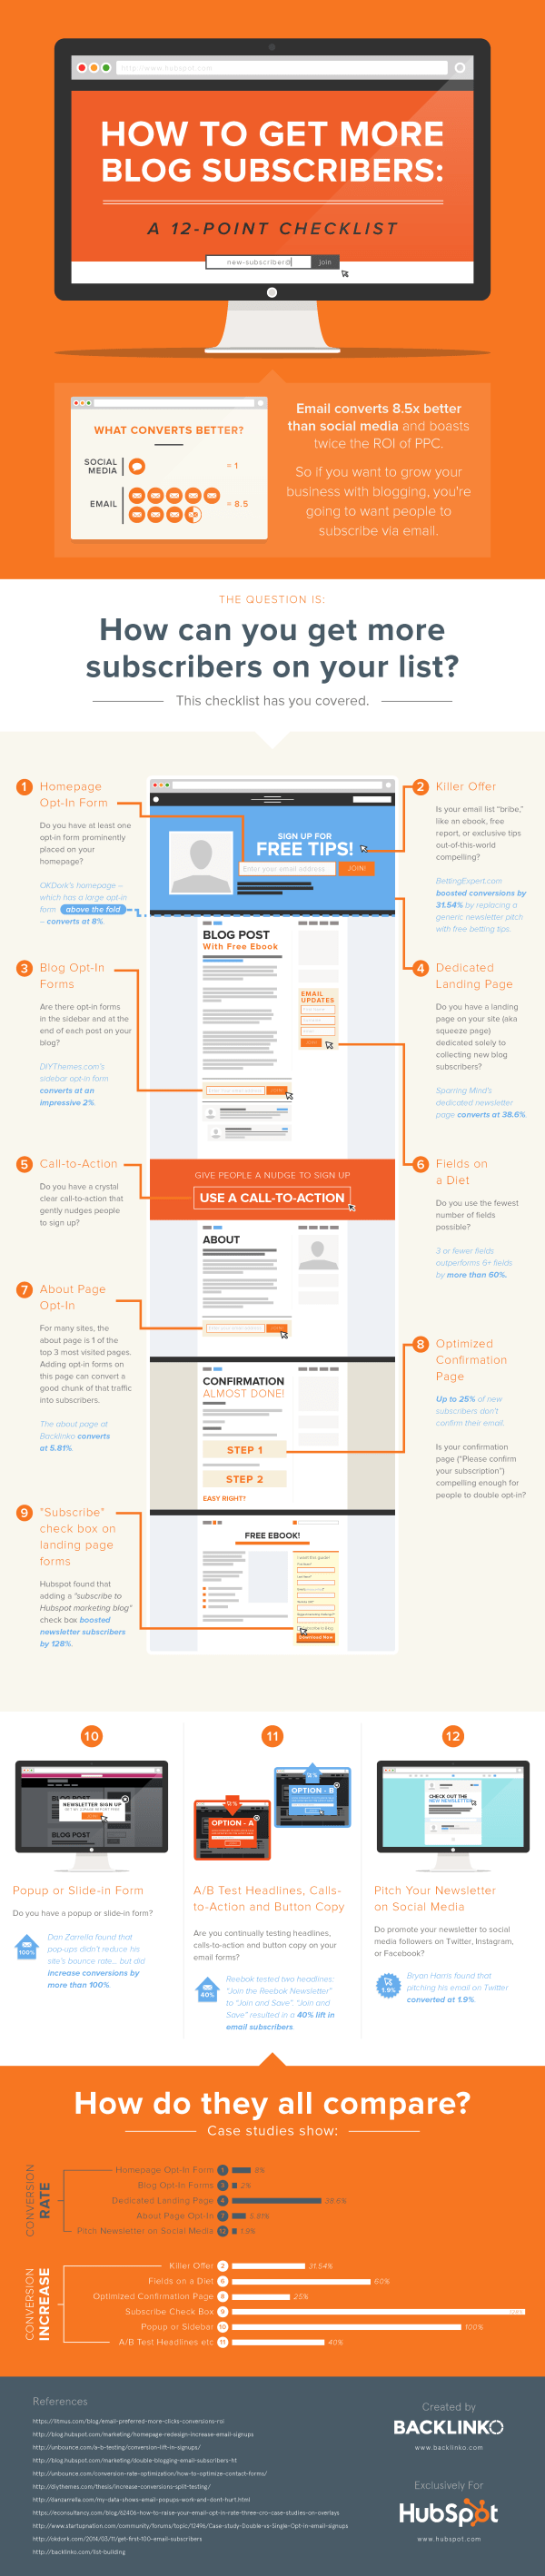 Infographic - How to get more blog subscribers. A 12 point check list.